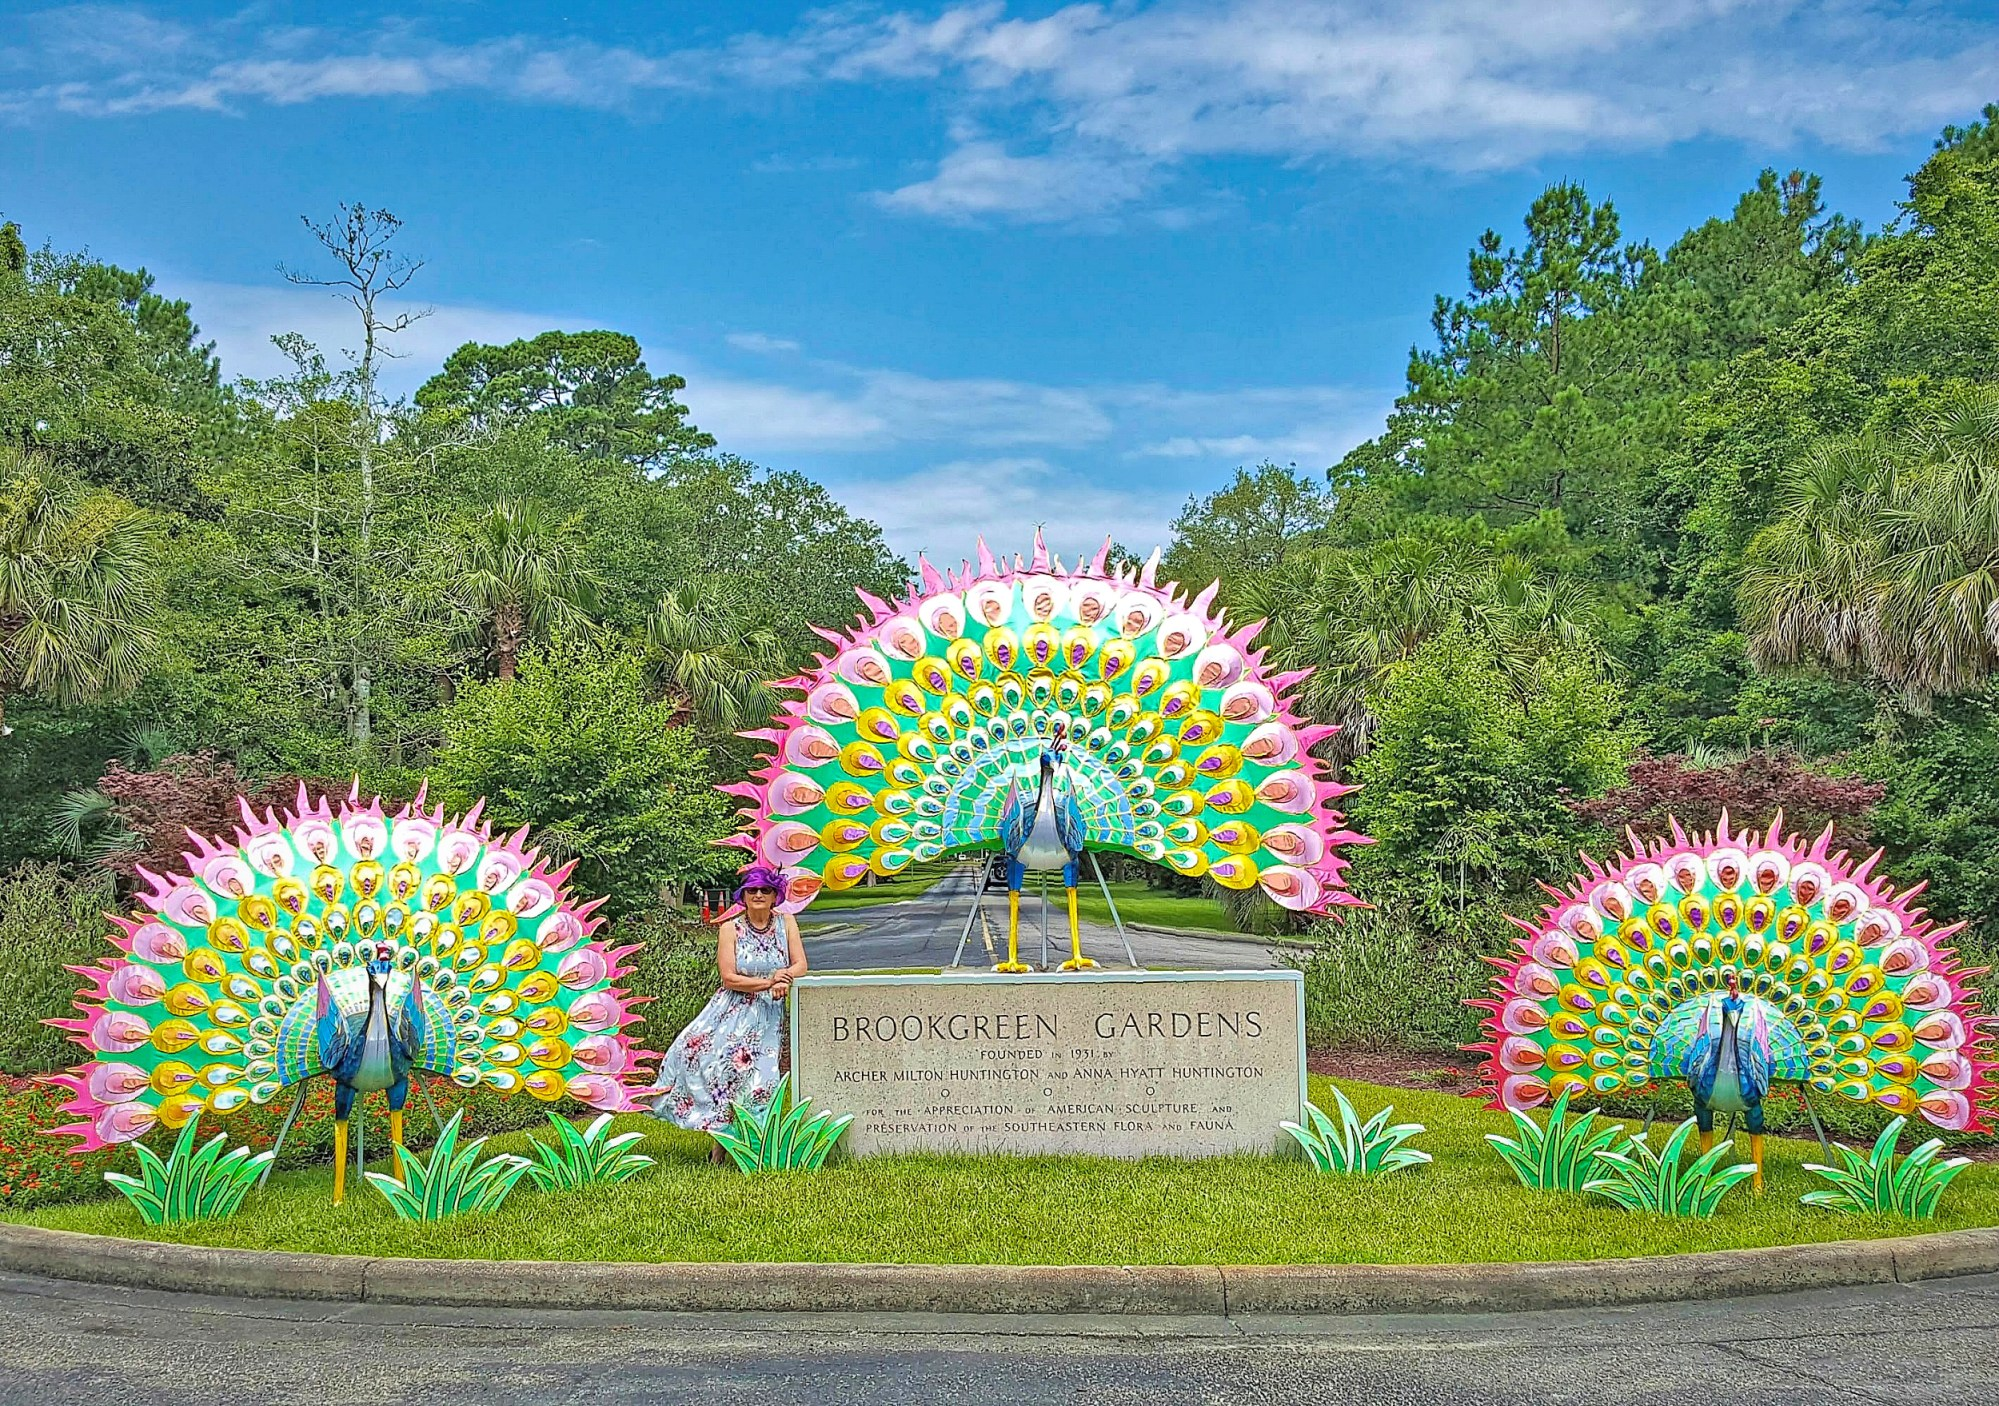 Entrance to Brookgreen Gardens in South Carolina.